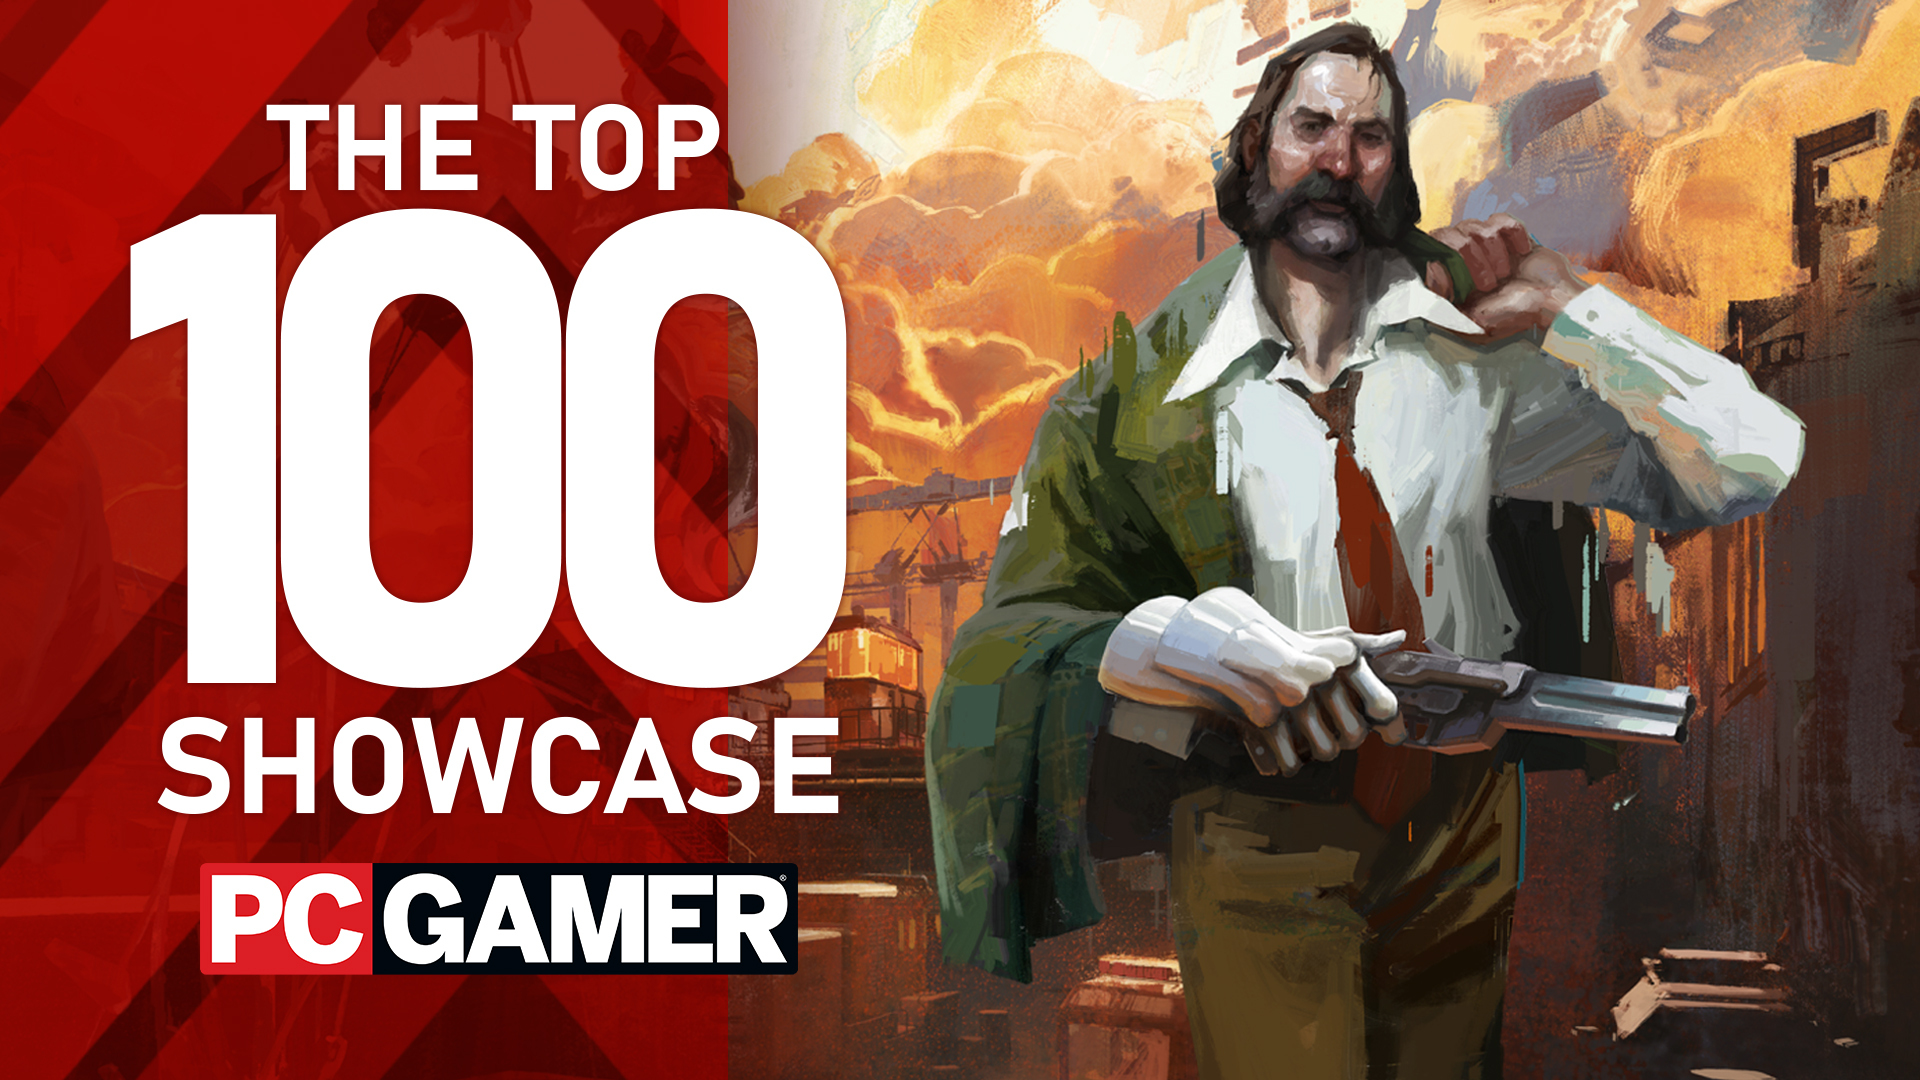 Watch our video showcase of this year's PC Gamer Top 100